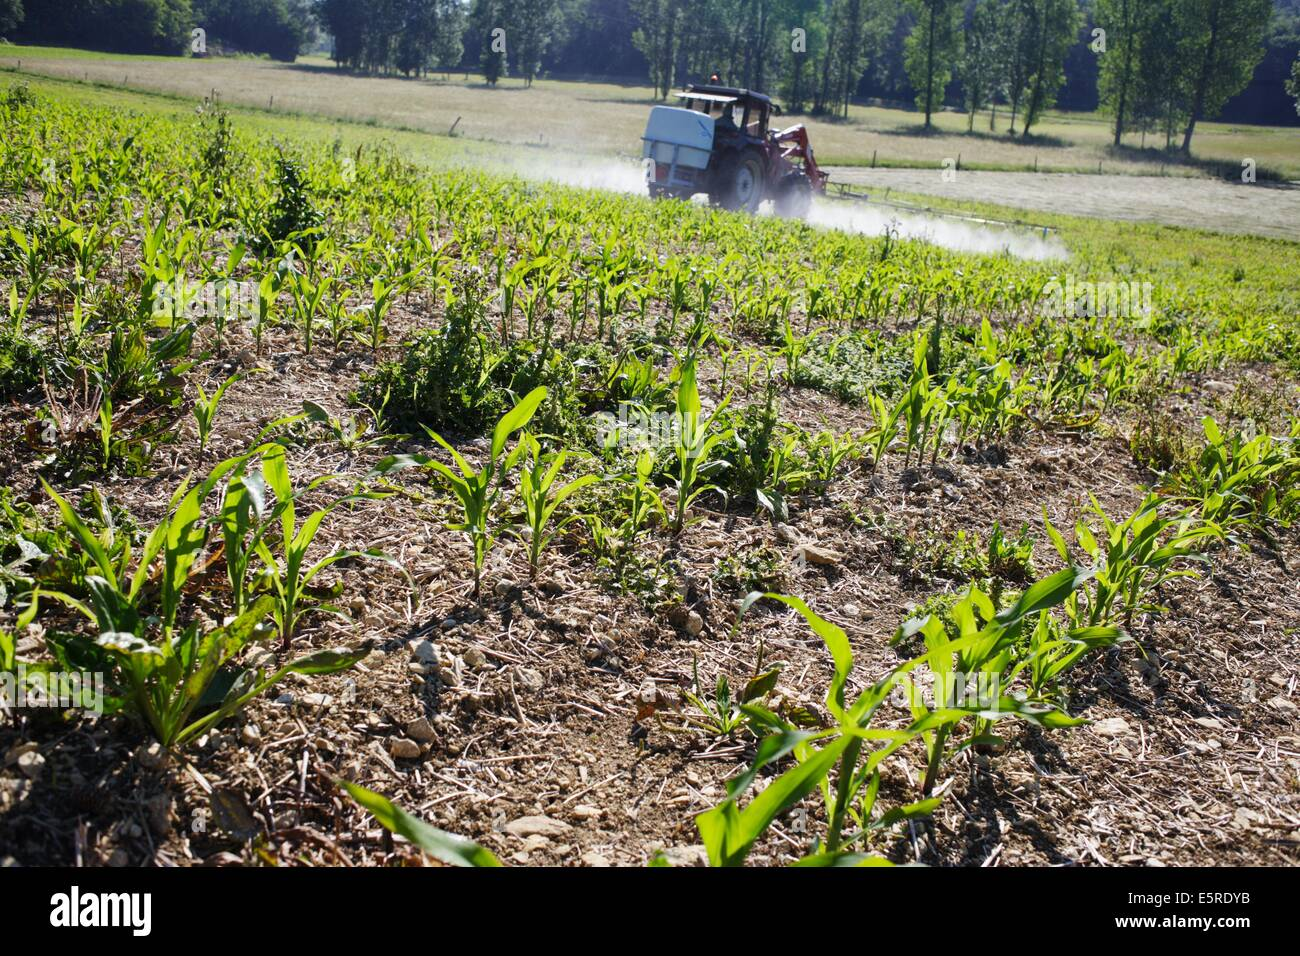 Sustainable Farmer Farmer Spraying Chemicals On Corn Fields This Farmer Uses Stock